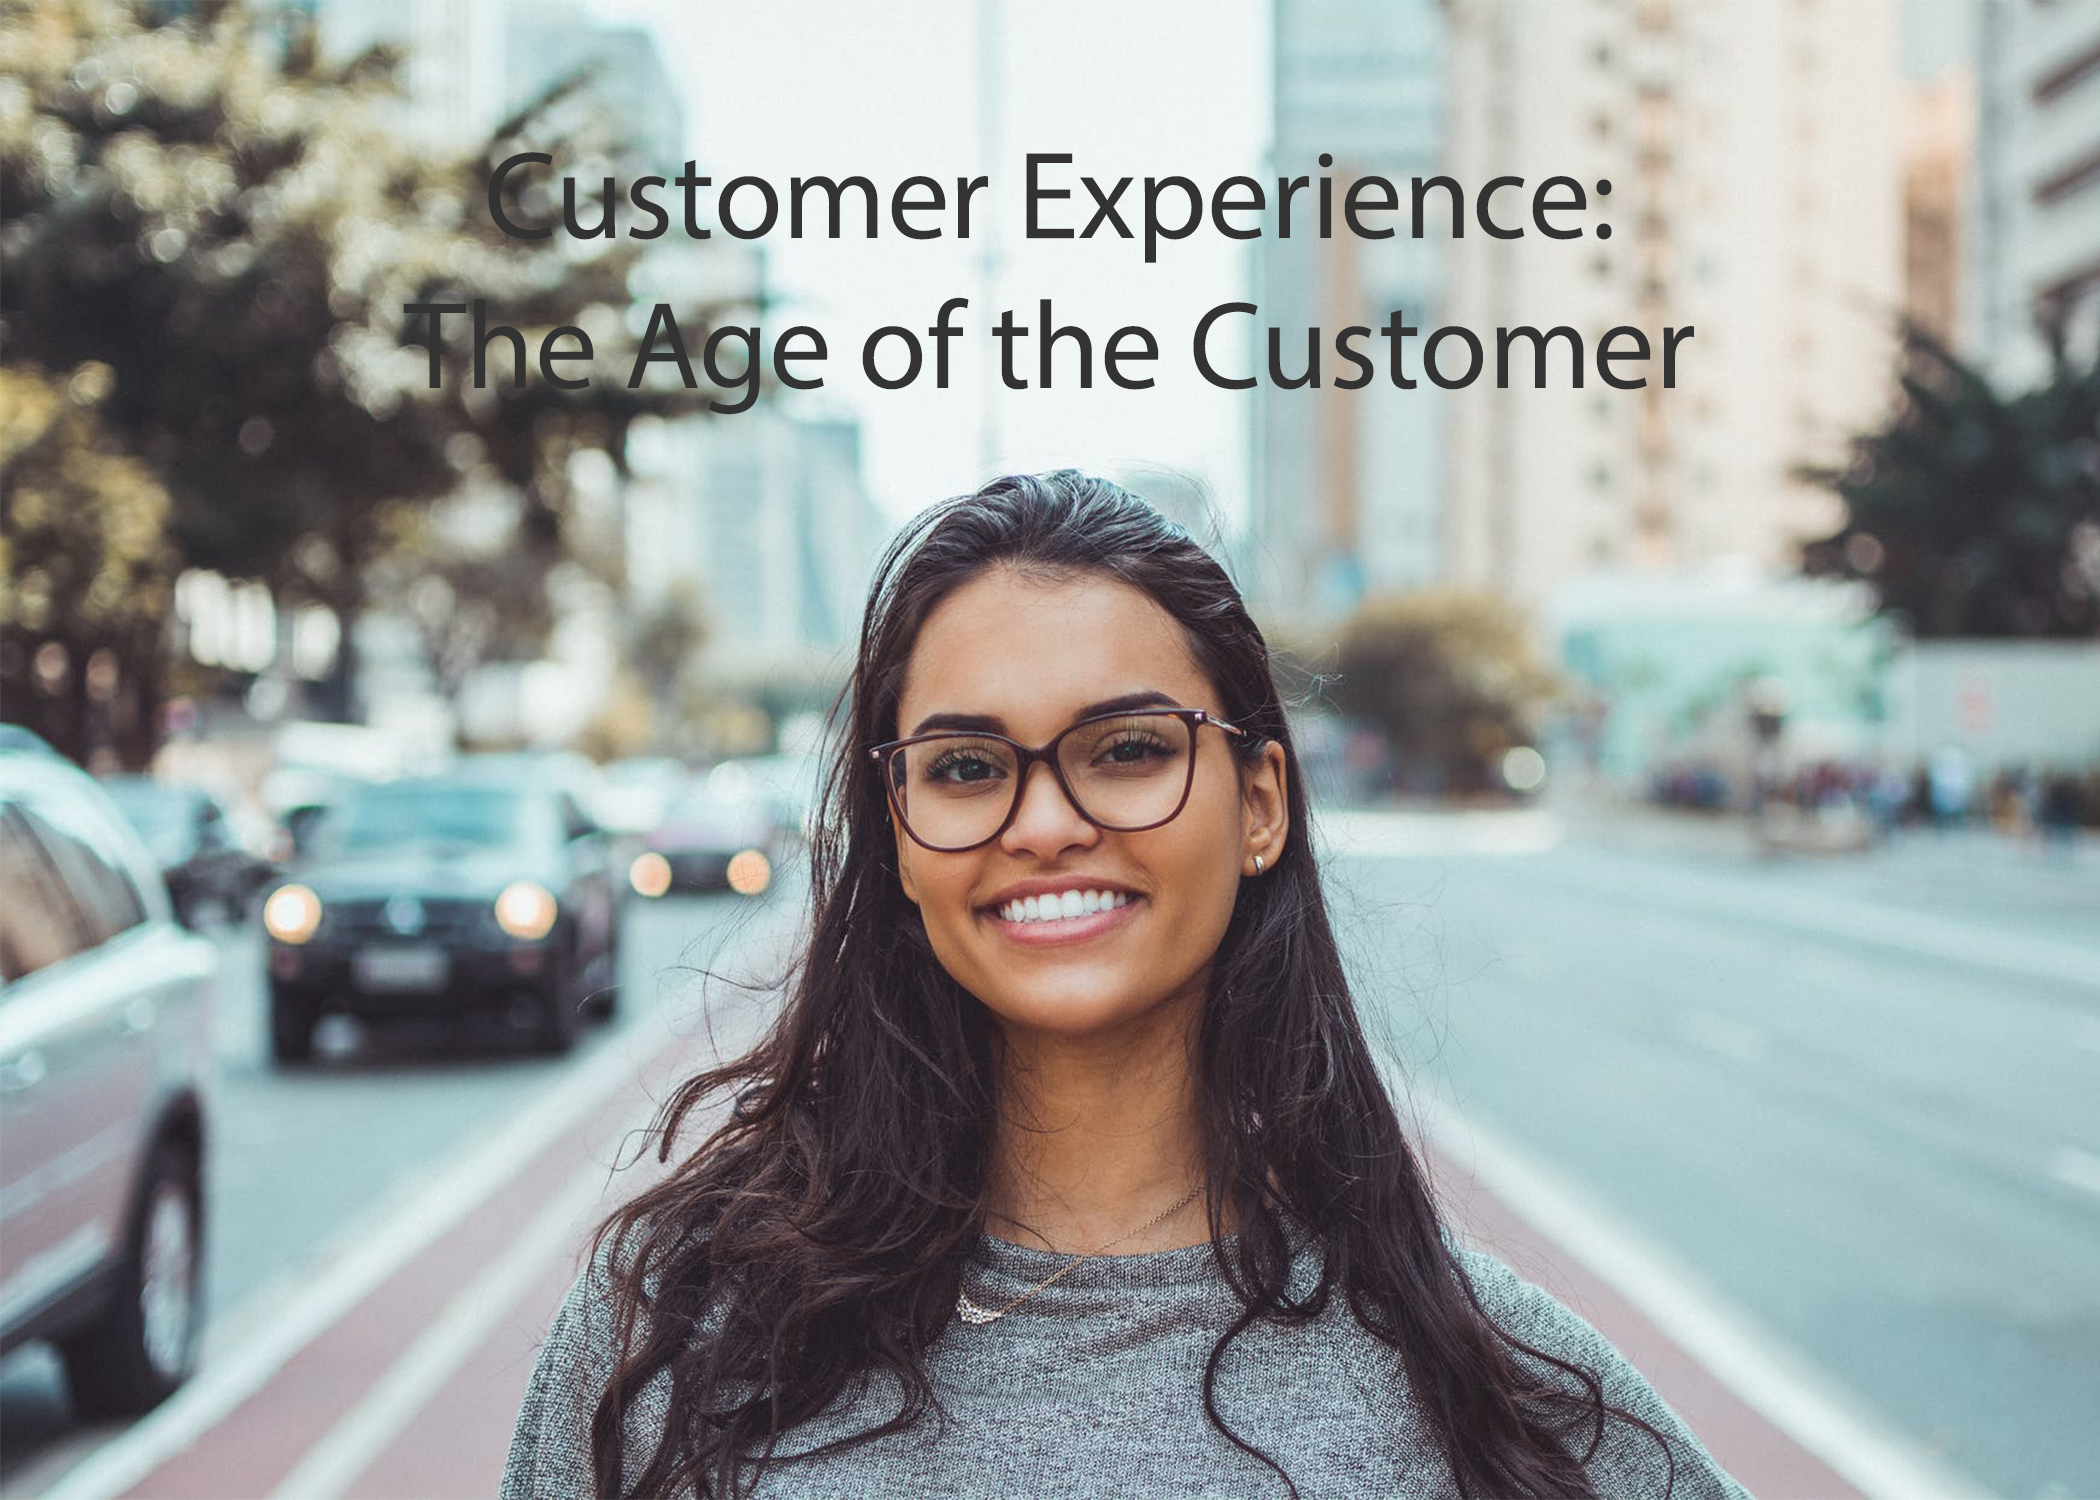 Marketing in a Minute: Customer Experience ...The Age of The Customer